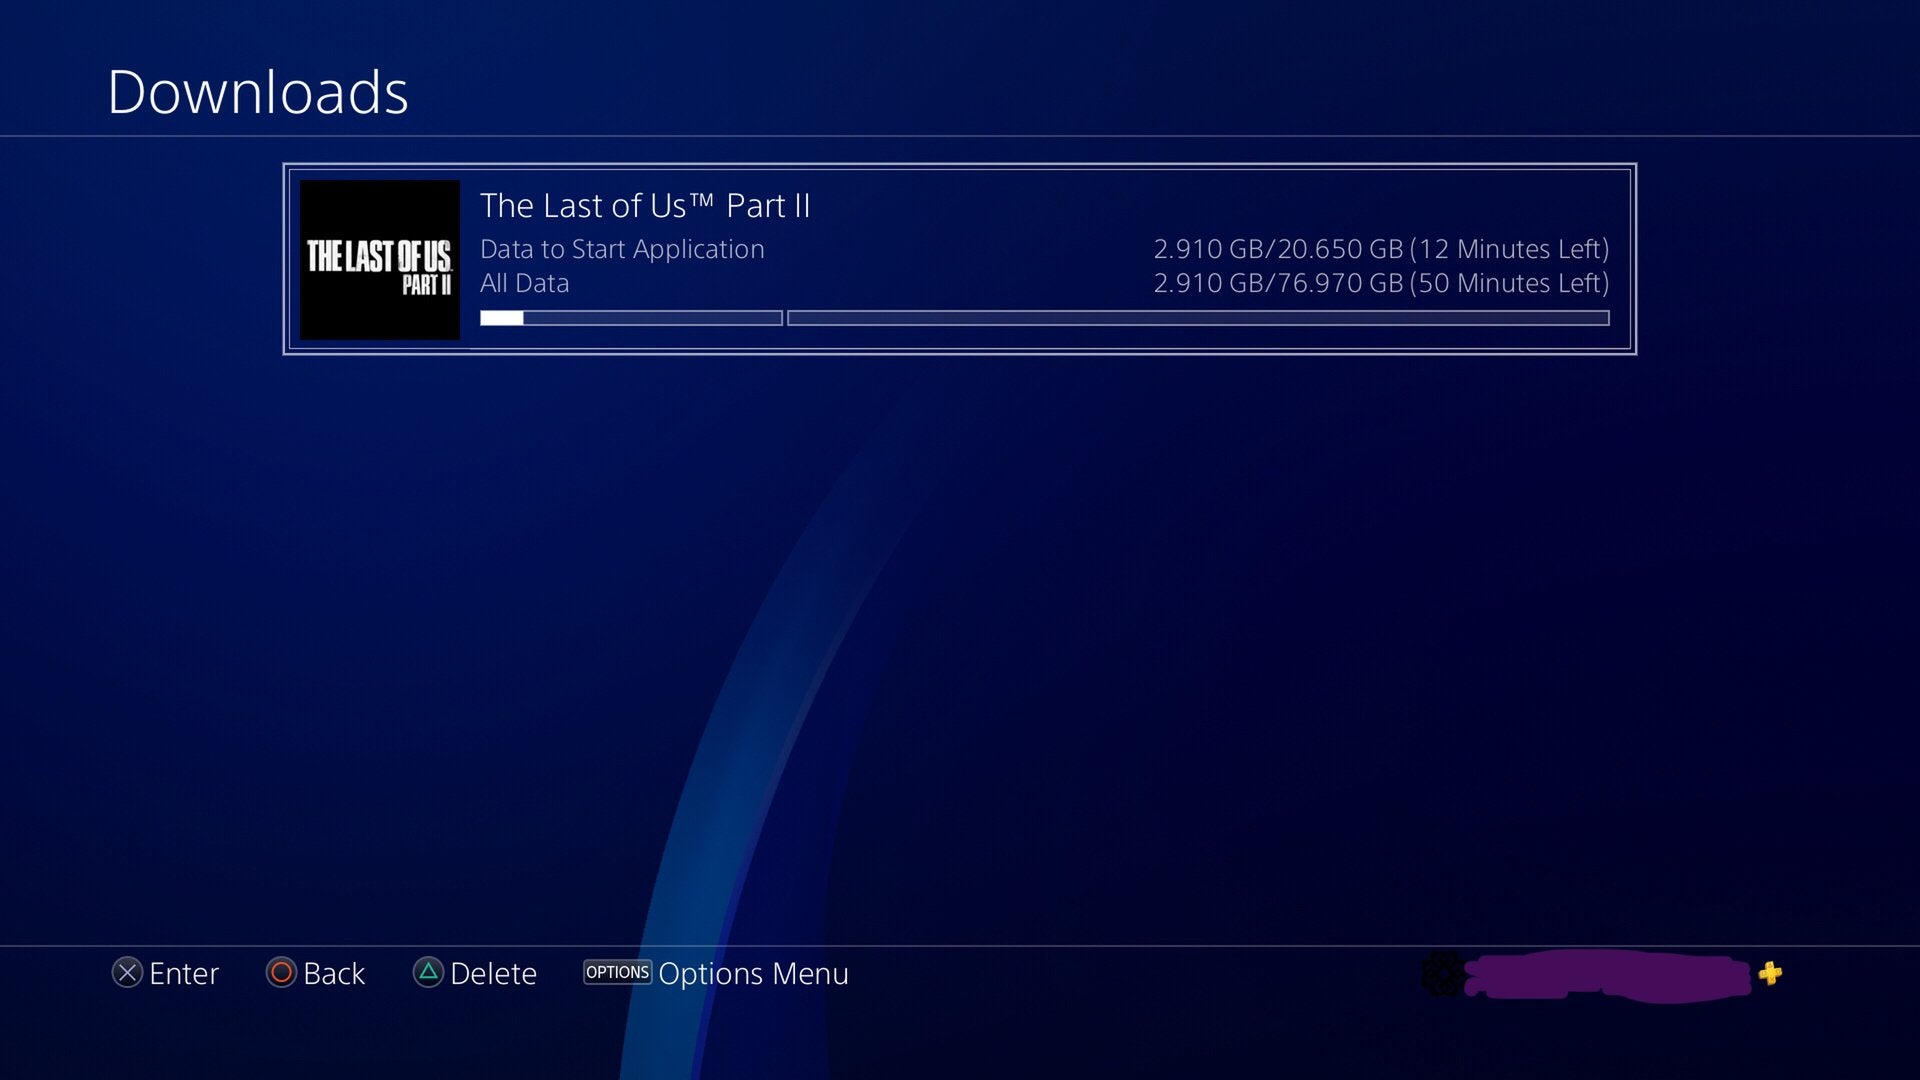 the last of us 2 pre-load